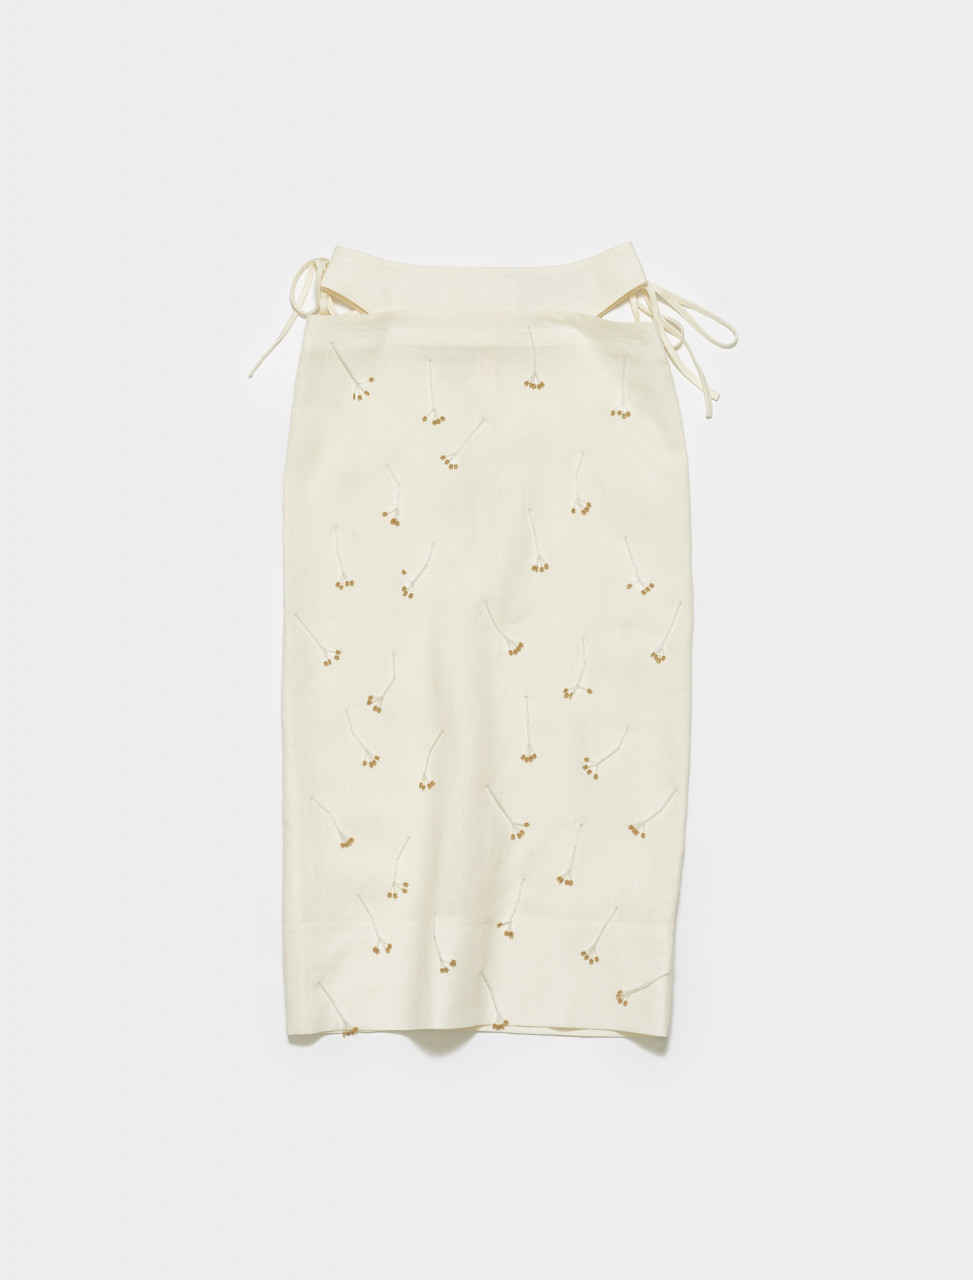 211SK01-211 12711A JACQUEMUS LA JUPE BLE IN EMBROIDERED ECRU211SK01-211 12711A JACQUEMUS LA JUPE BLE IN EMBROIDERED ECRU